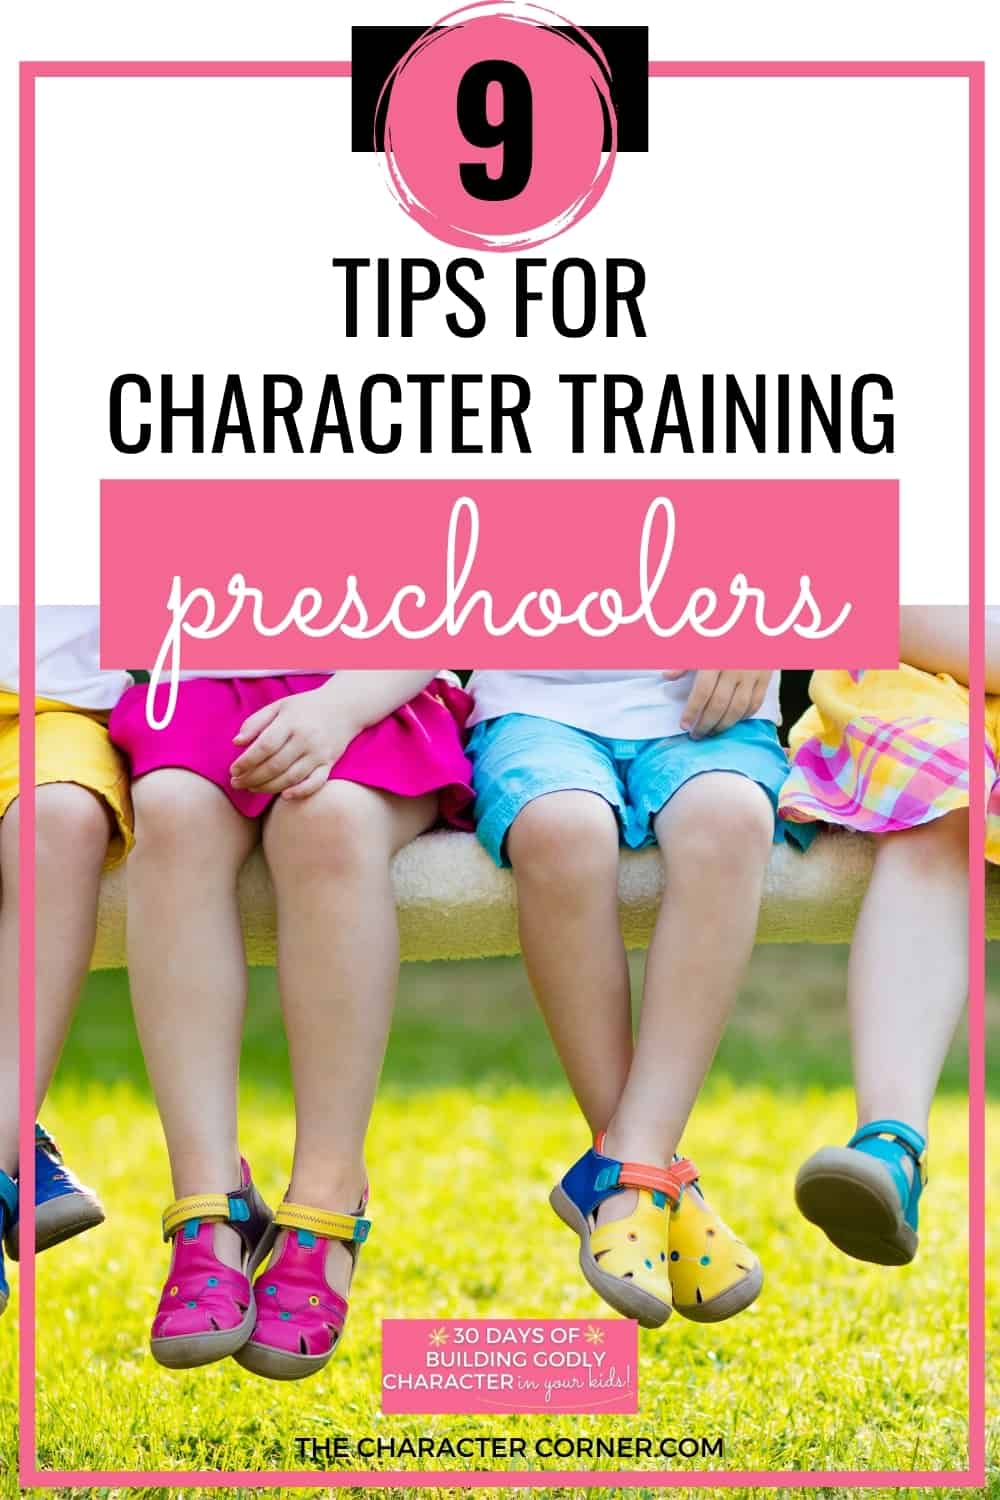 Kids sitting together on bench text on image reads 9 Tips For Character Training In Preschoolers